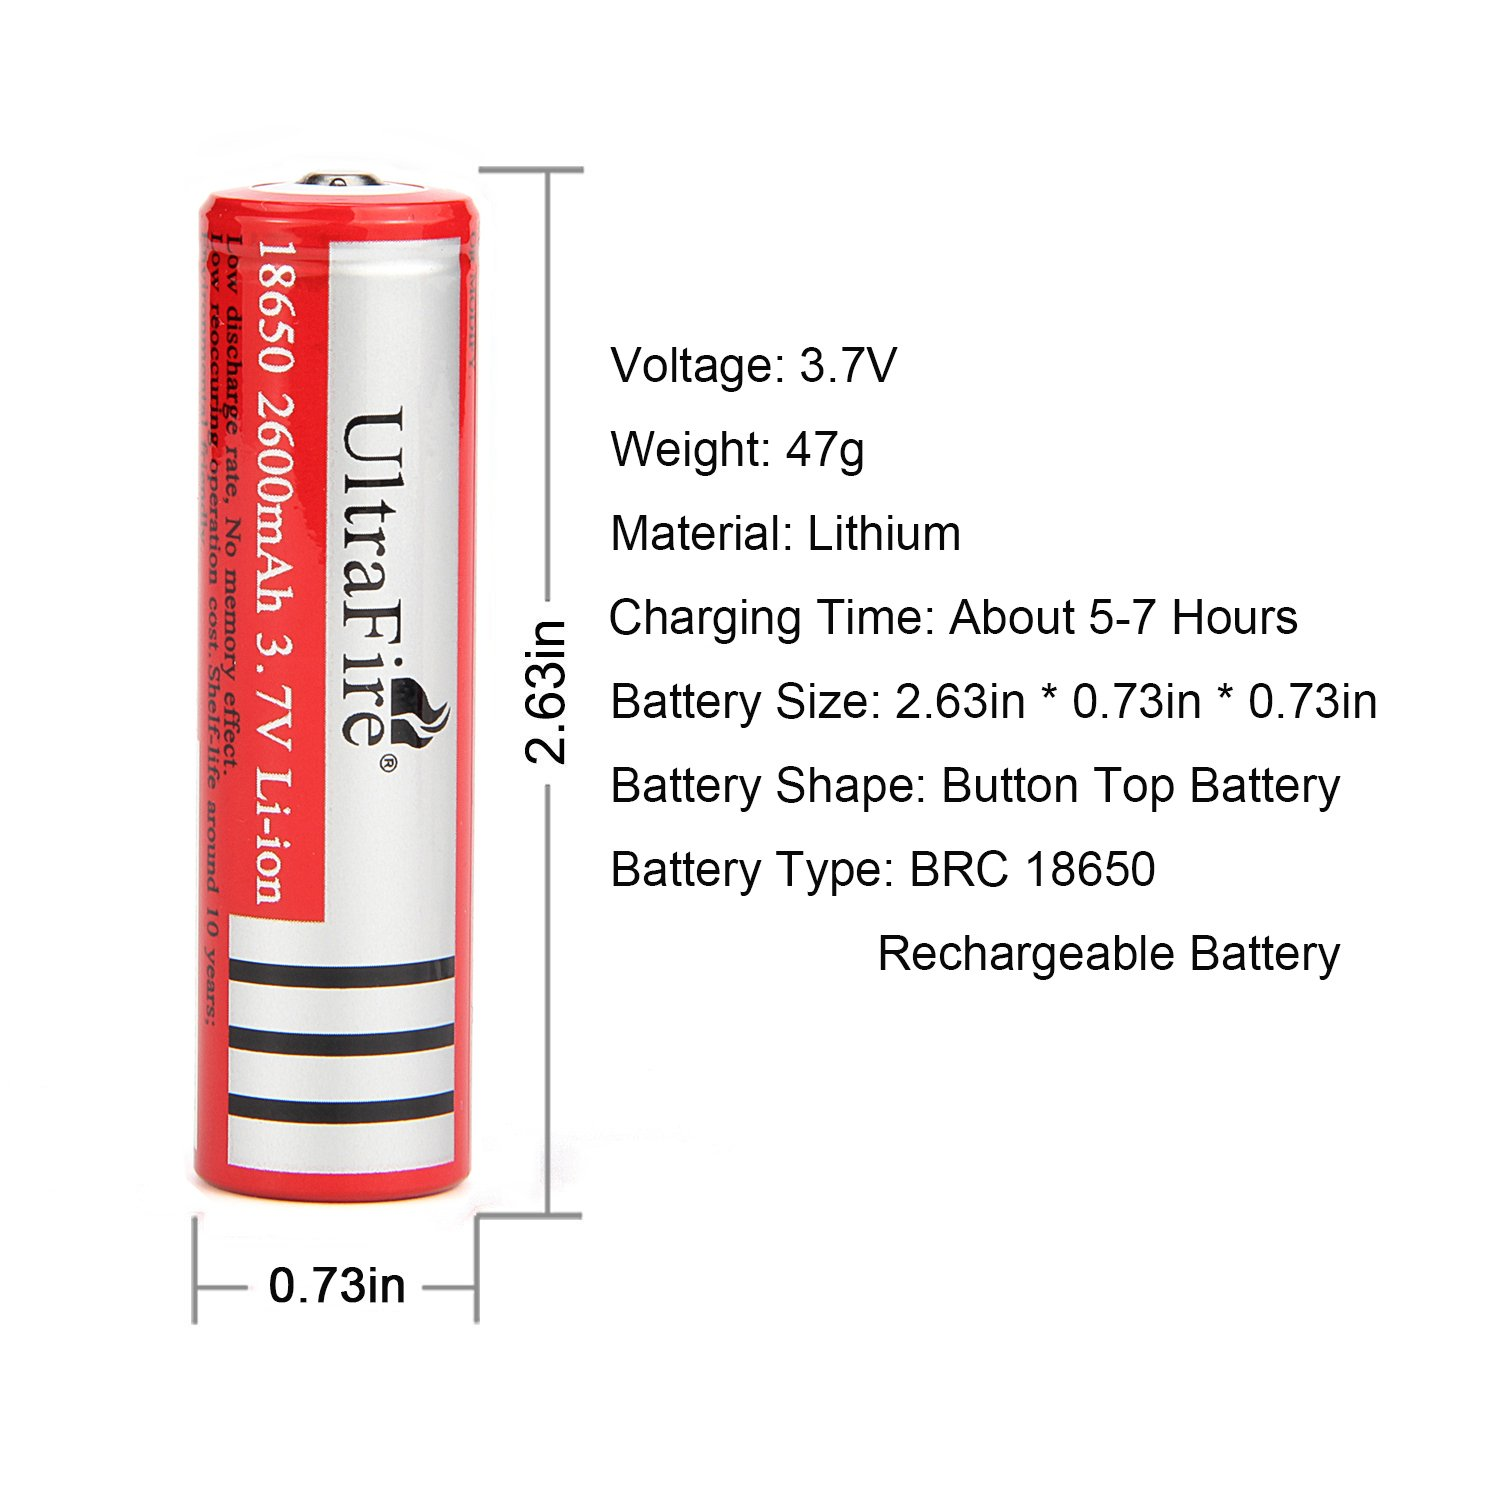 Ultrafire 18650 Battery 37v Rechargeable Protection Circuit For Led Torch Sanyo Cell 2600mah Li Ion Button Top2 Pack Health Personal Care